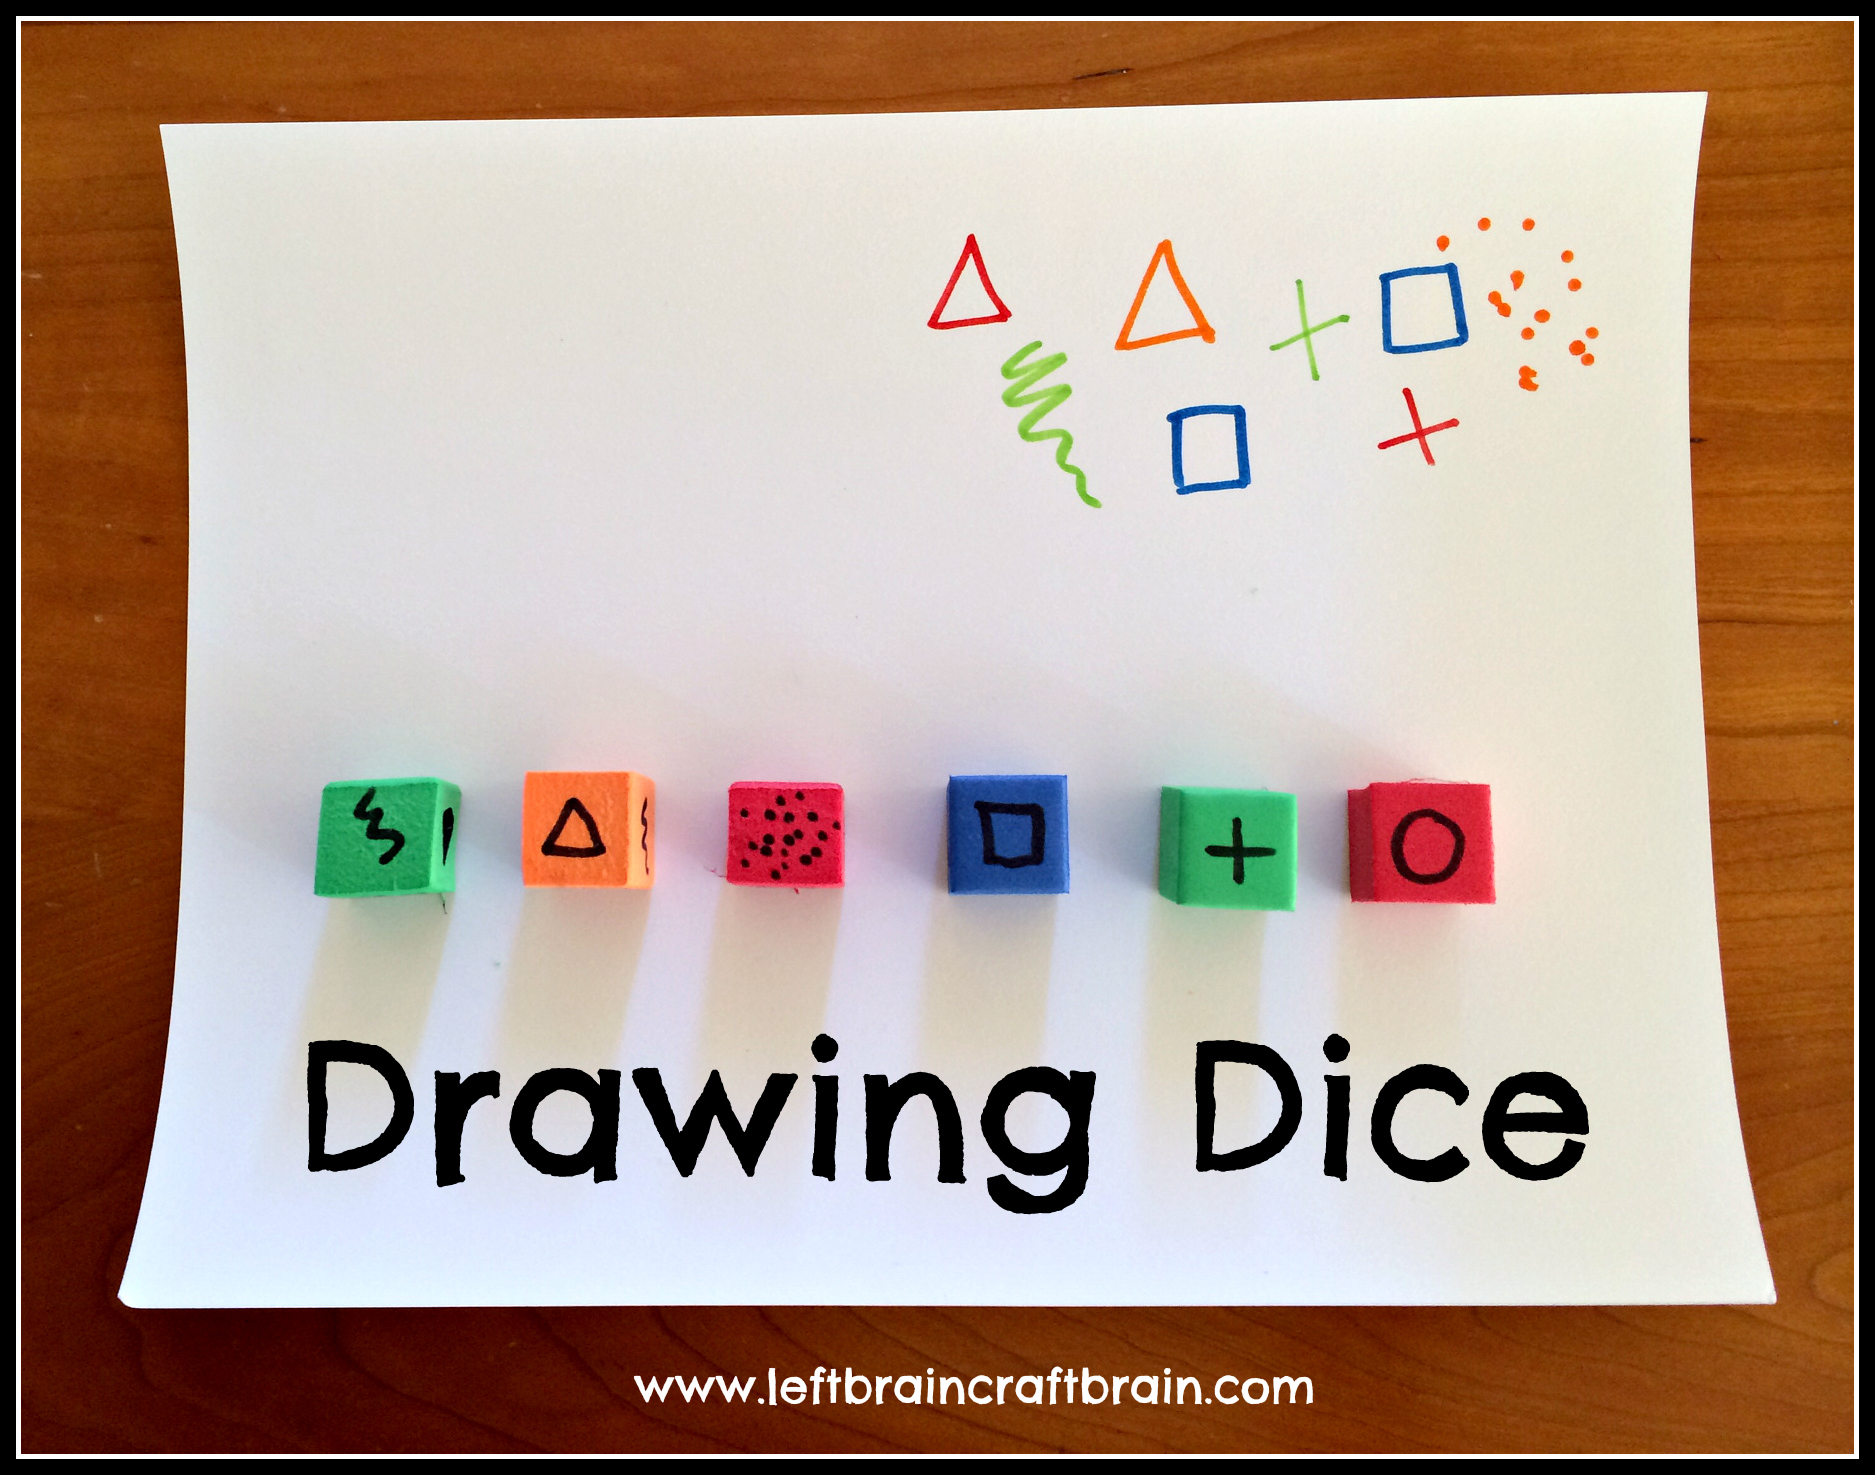 Five Minute Crafts:  Drawing Dice